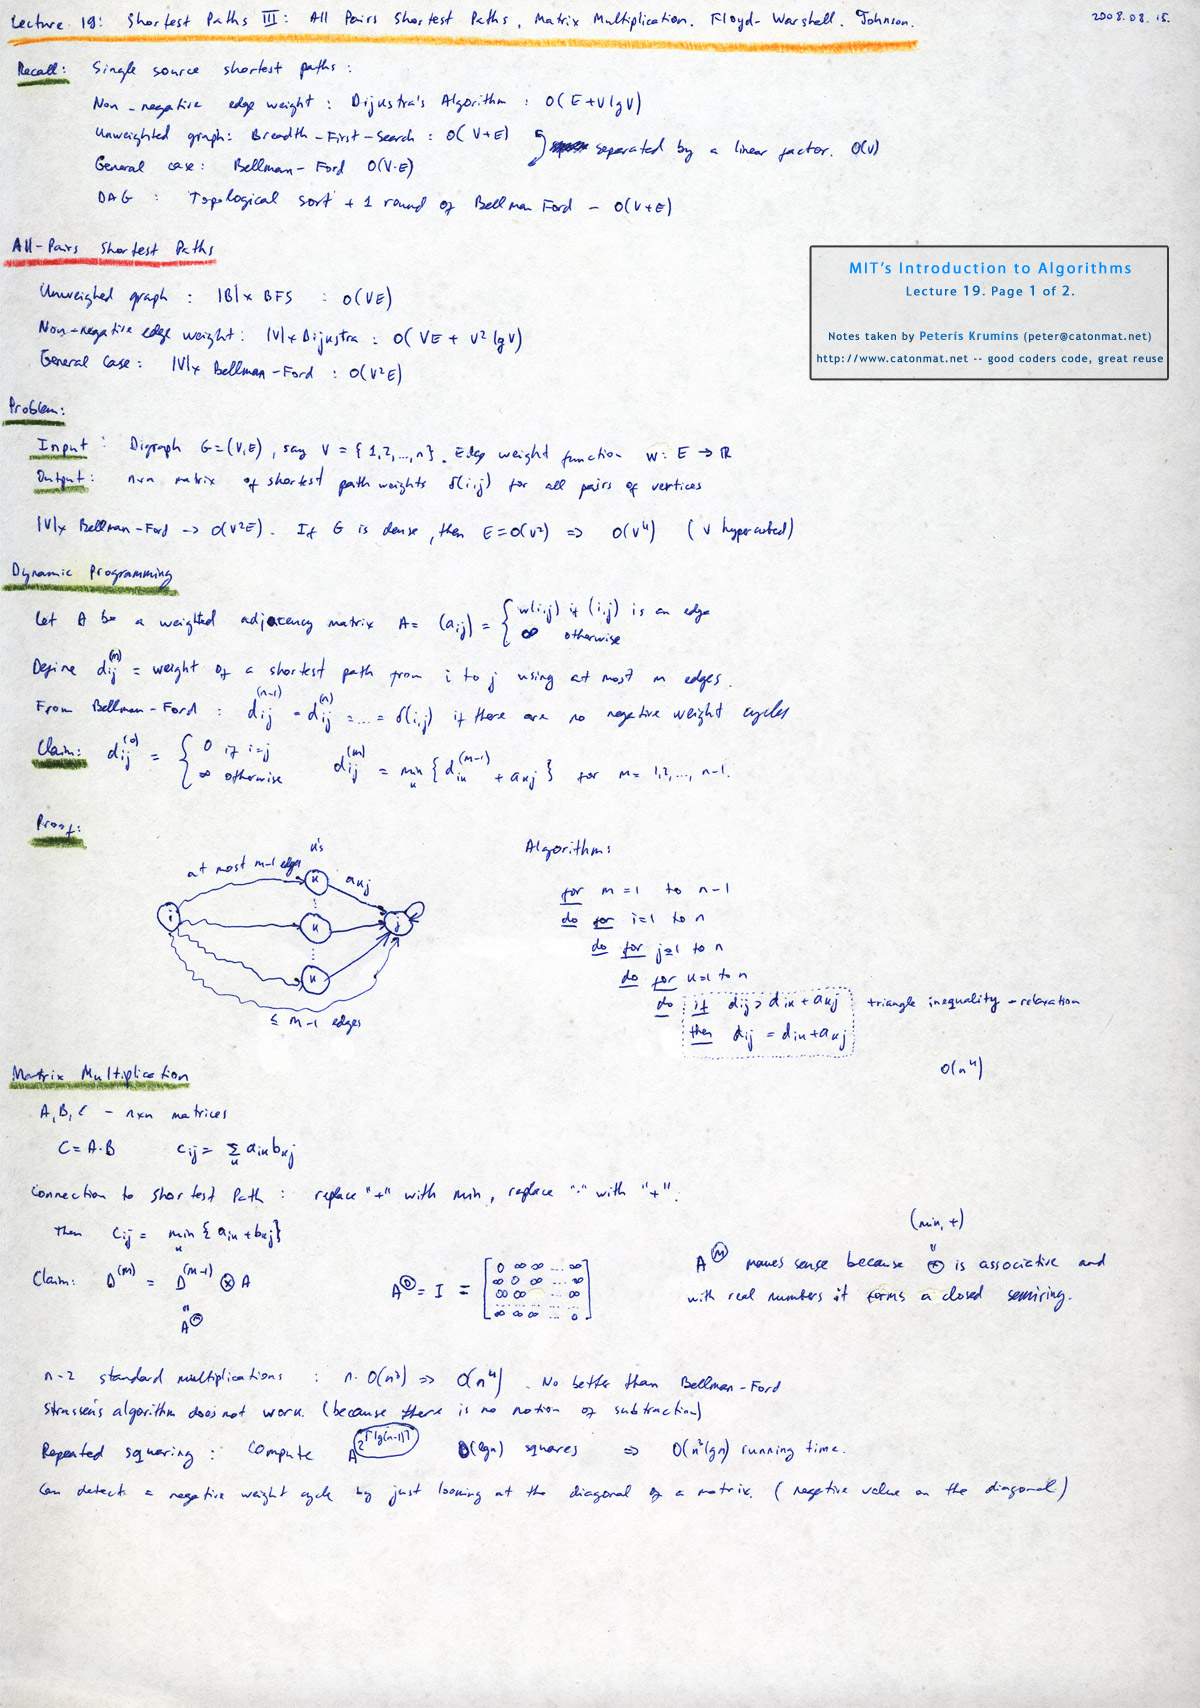 mit opencourseware algorithms dynamic programming Mit opencourseware educators utilize the materials for curriculum development, while students and self-learners around the globe use them for self-study or supplementary use with more than 2,000 courses now available, ocw is delivering on the promise of open sharing of knowledge.